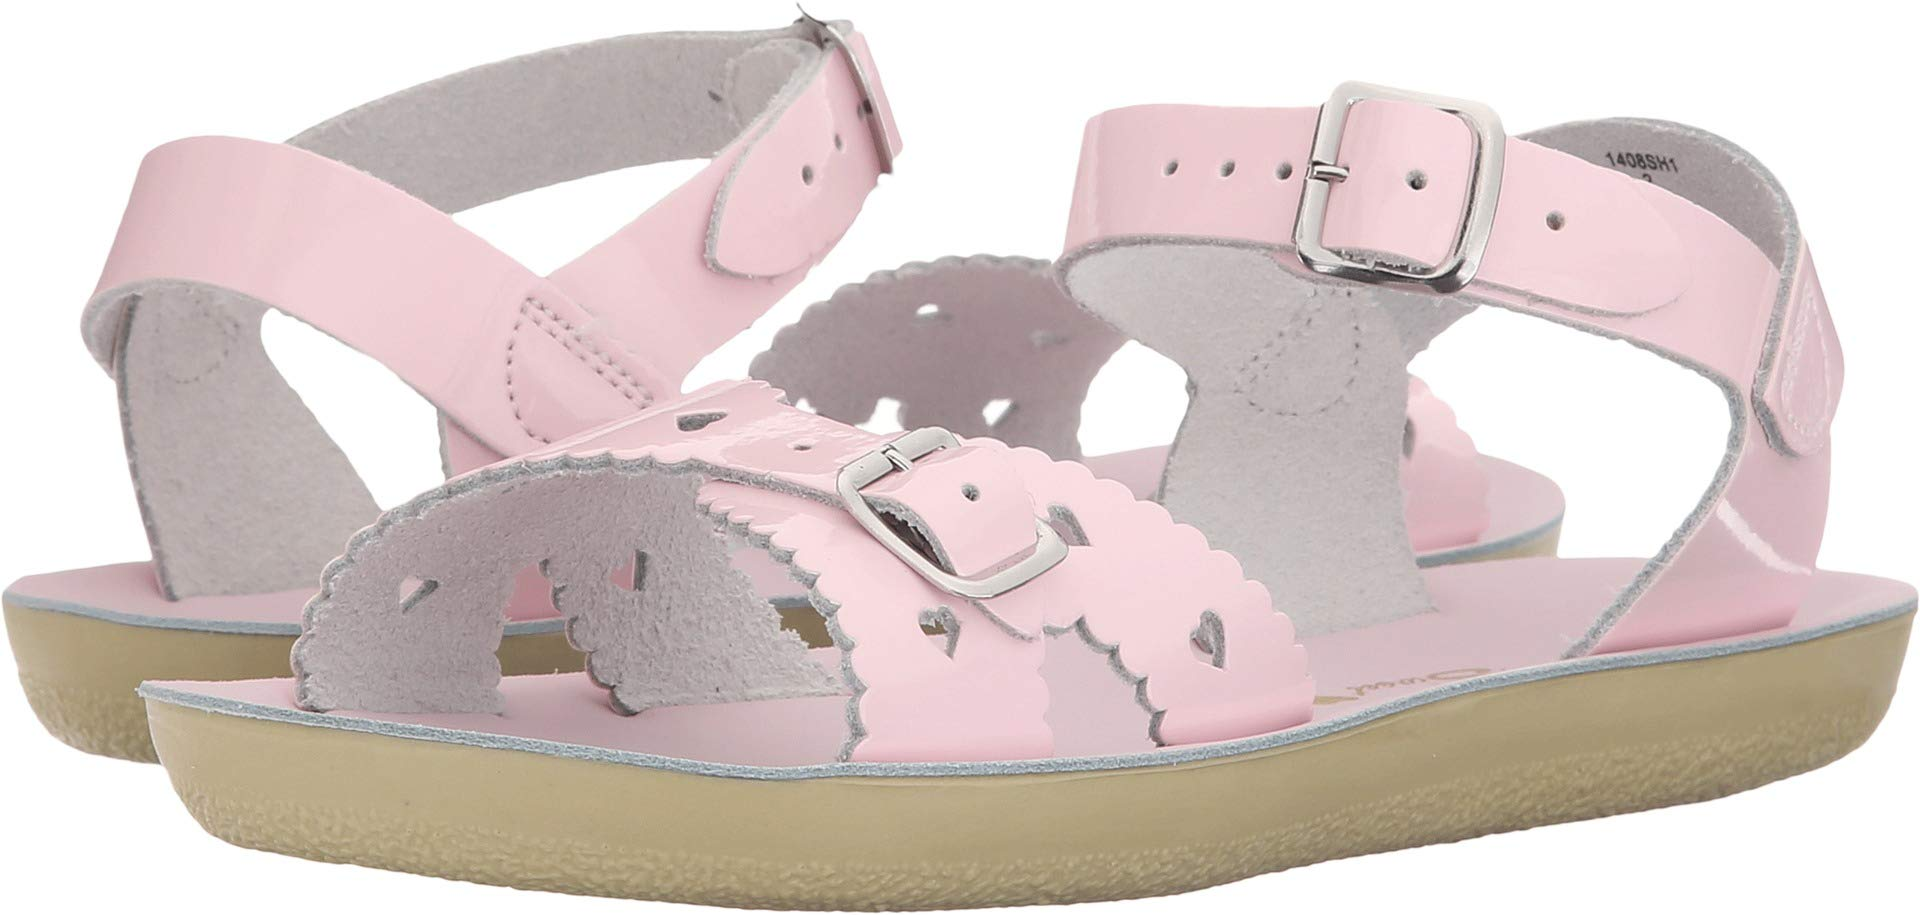 Salt Water Sandals by Hoy Shoe Girls' Sun-San Sweetheart Flat Sandal Shiny Pink 8 M US Toddler